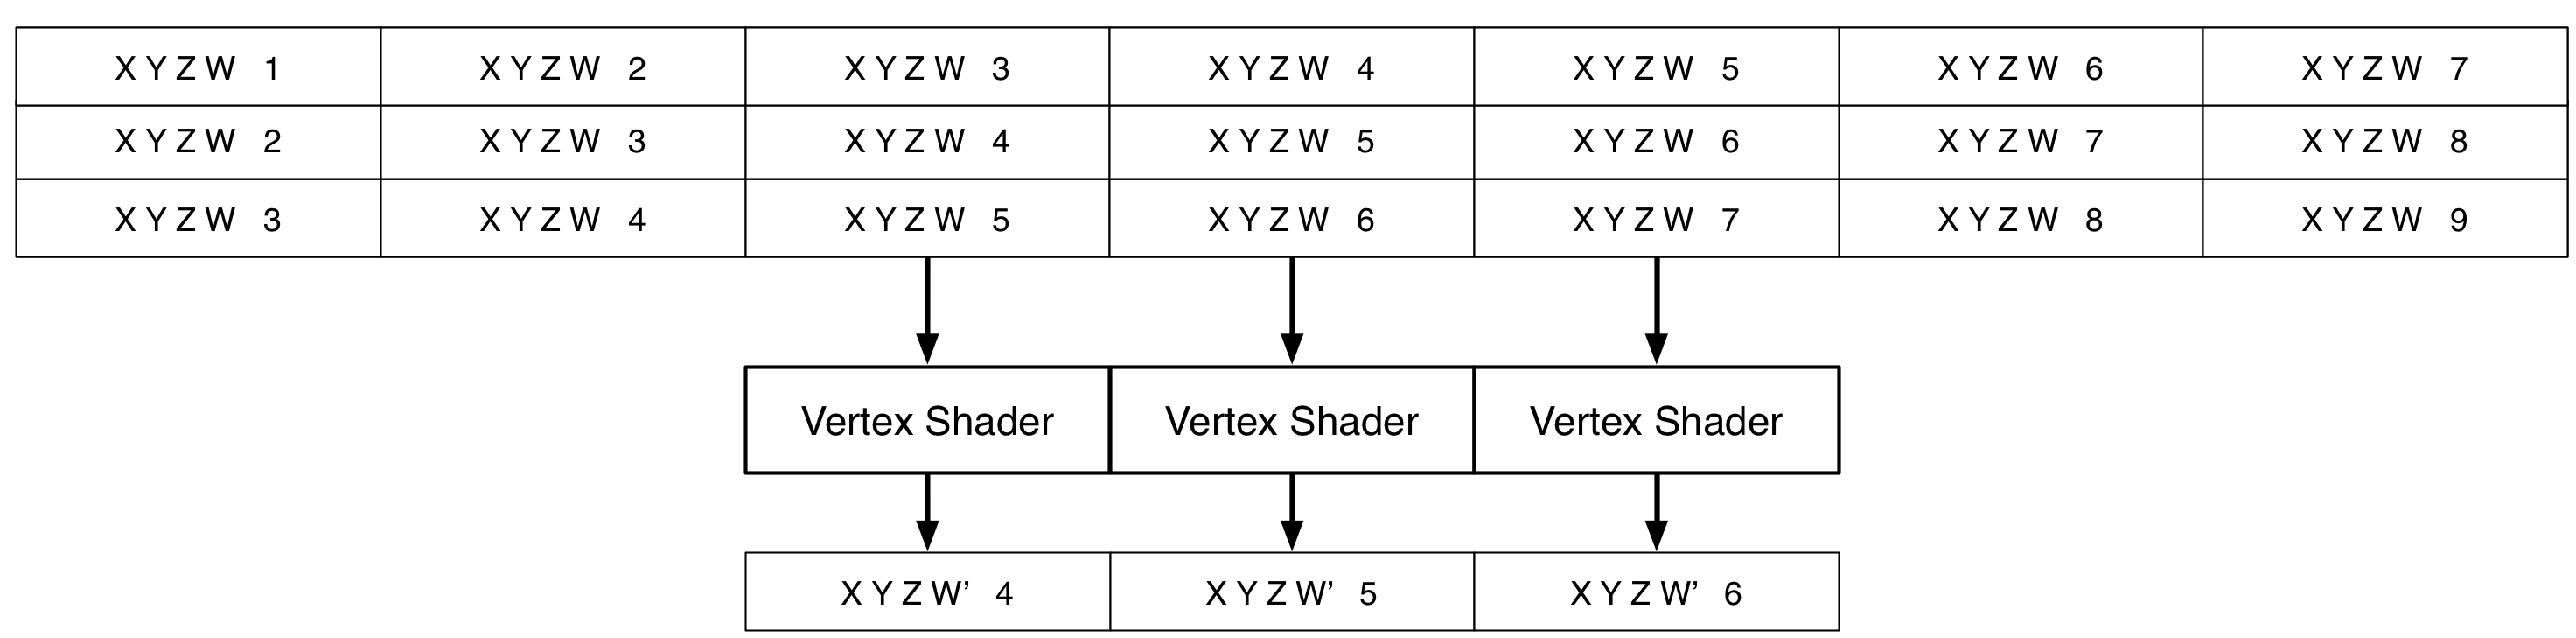 Vertex Shader Attributes